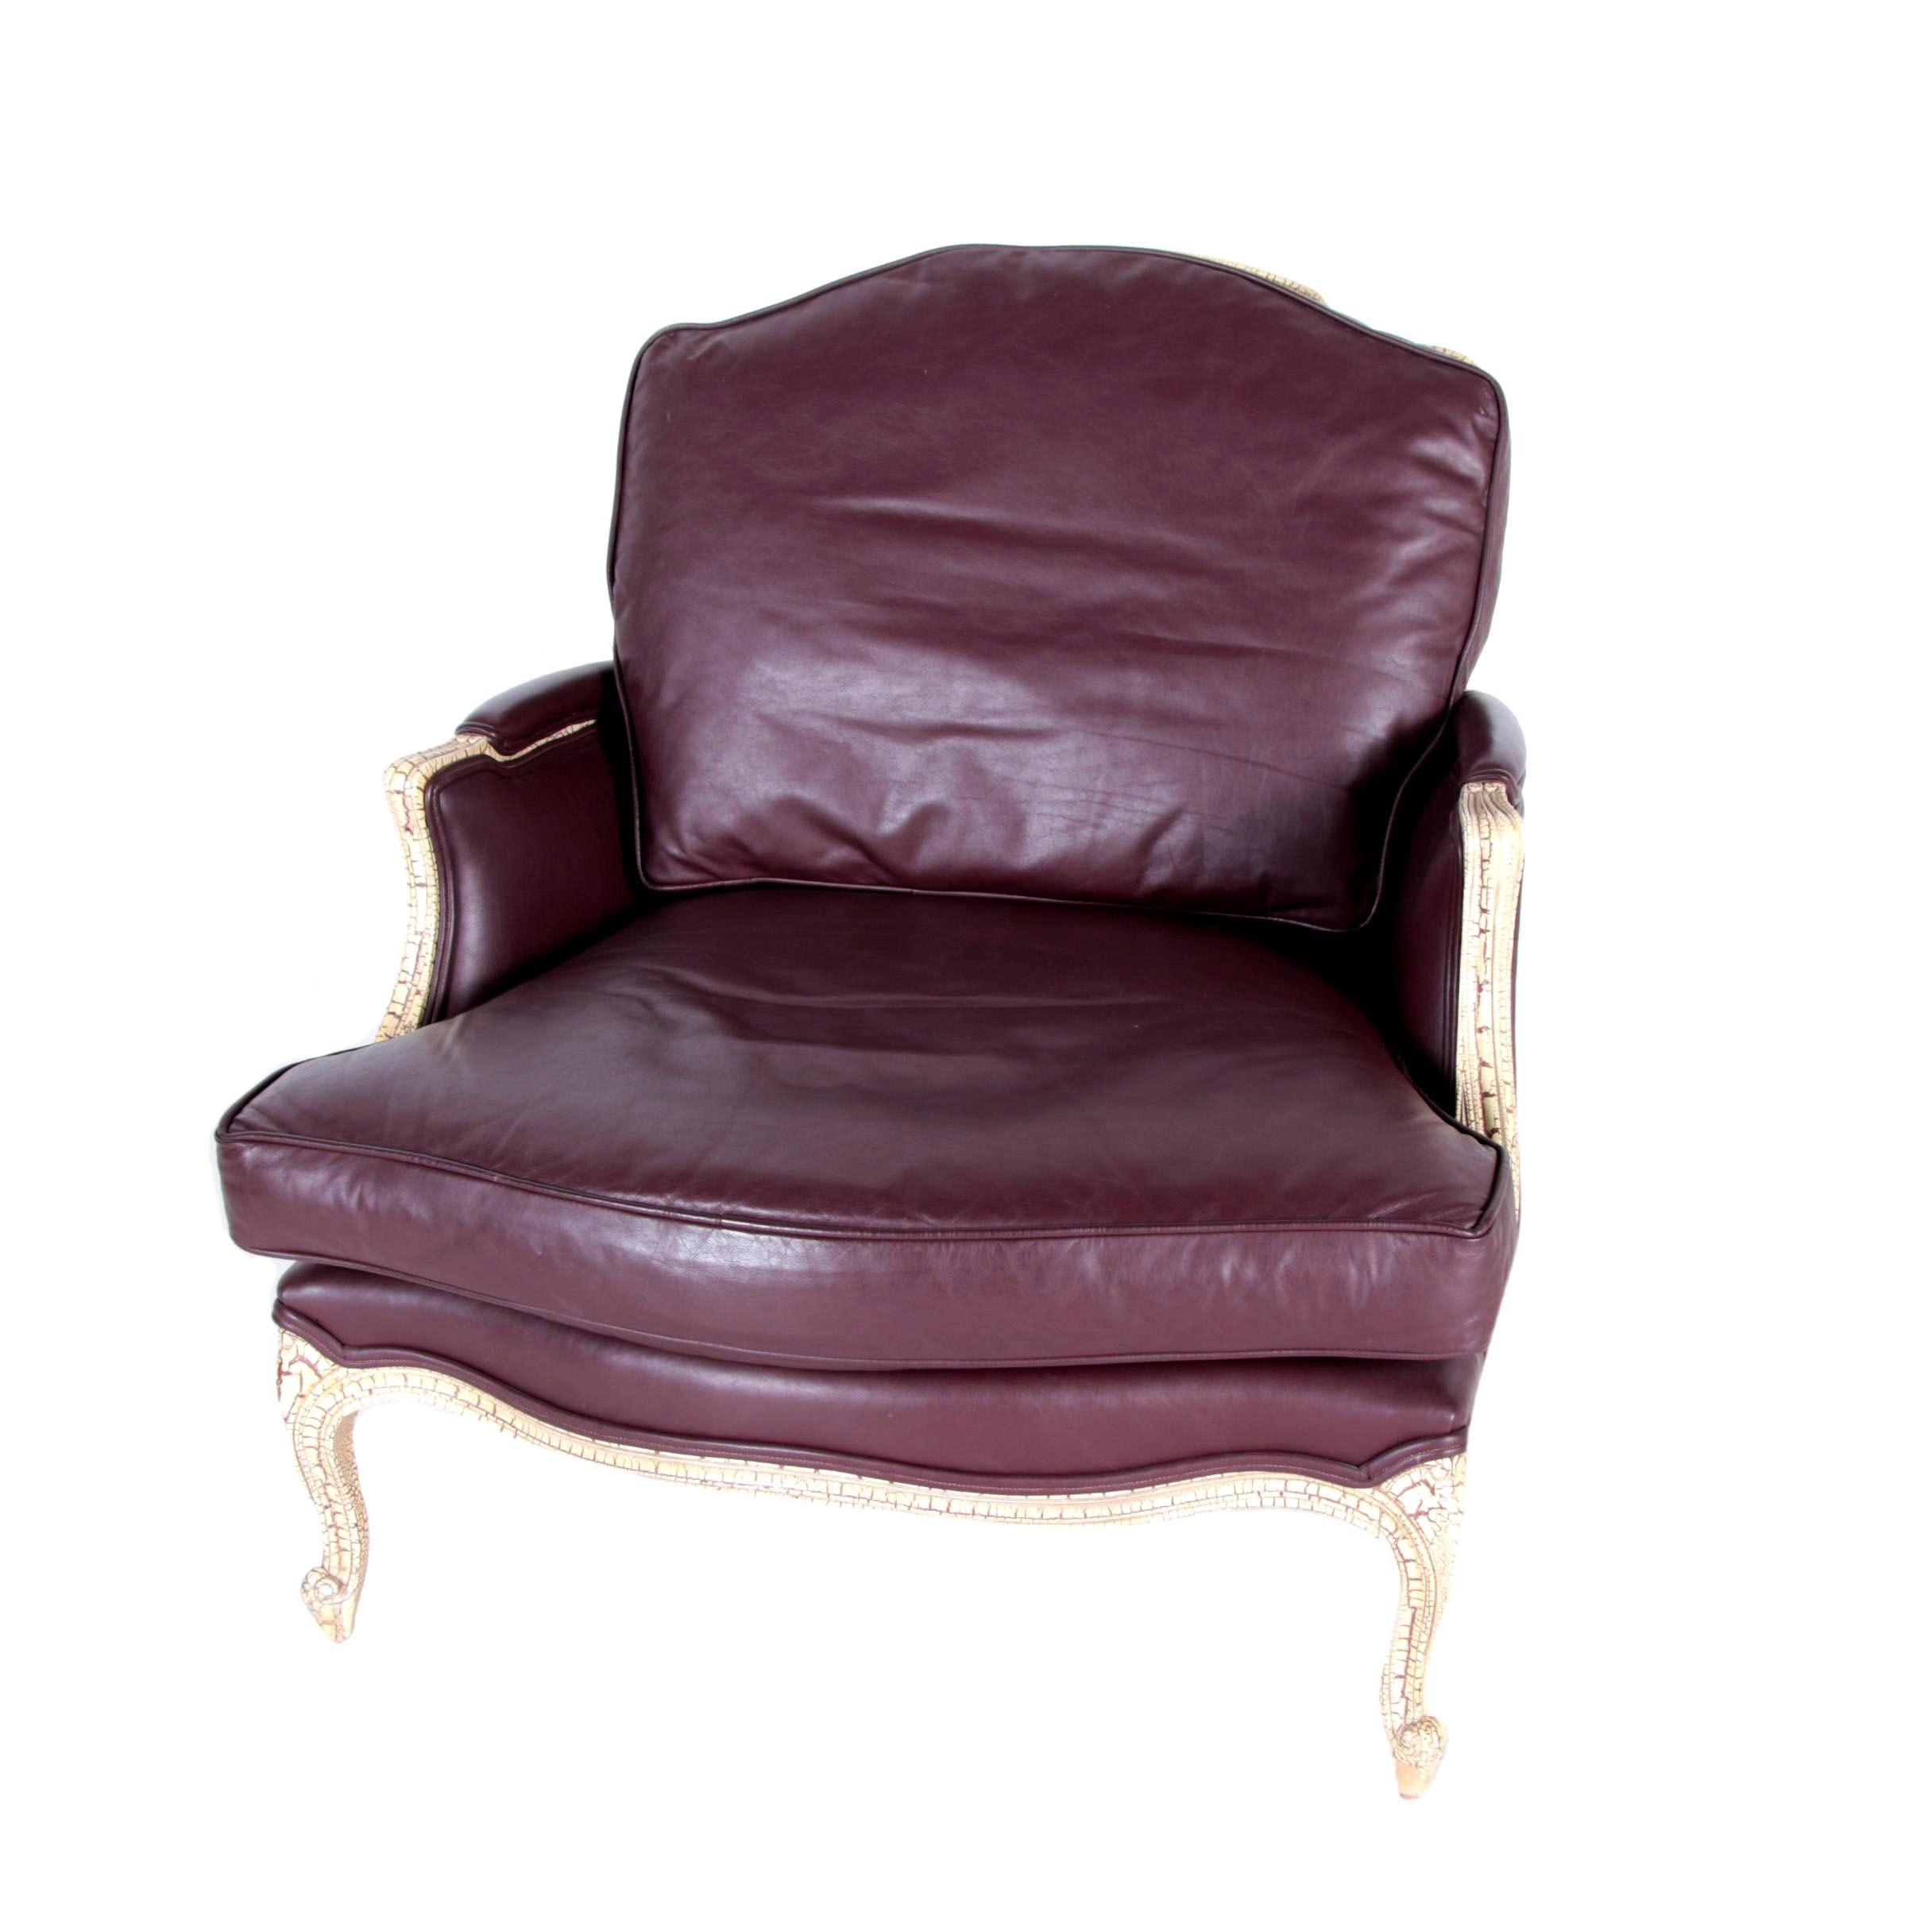 Bergère Chair by Century Chair Company